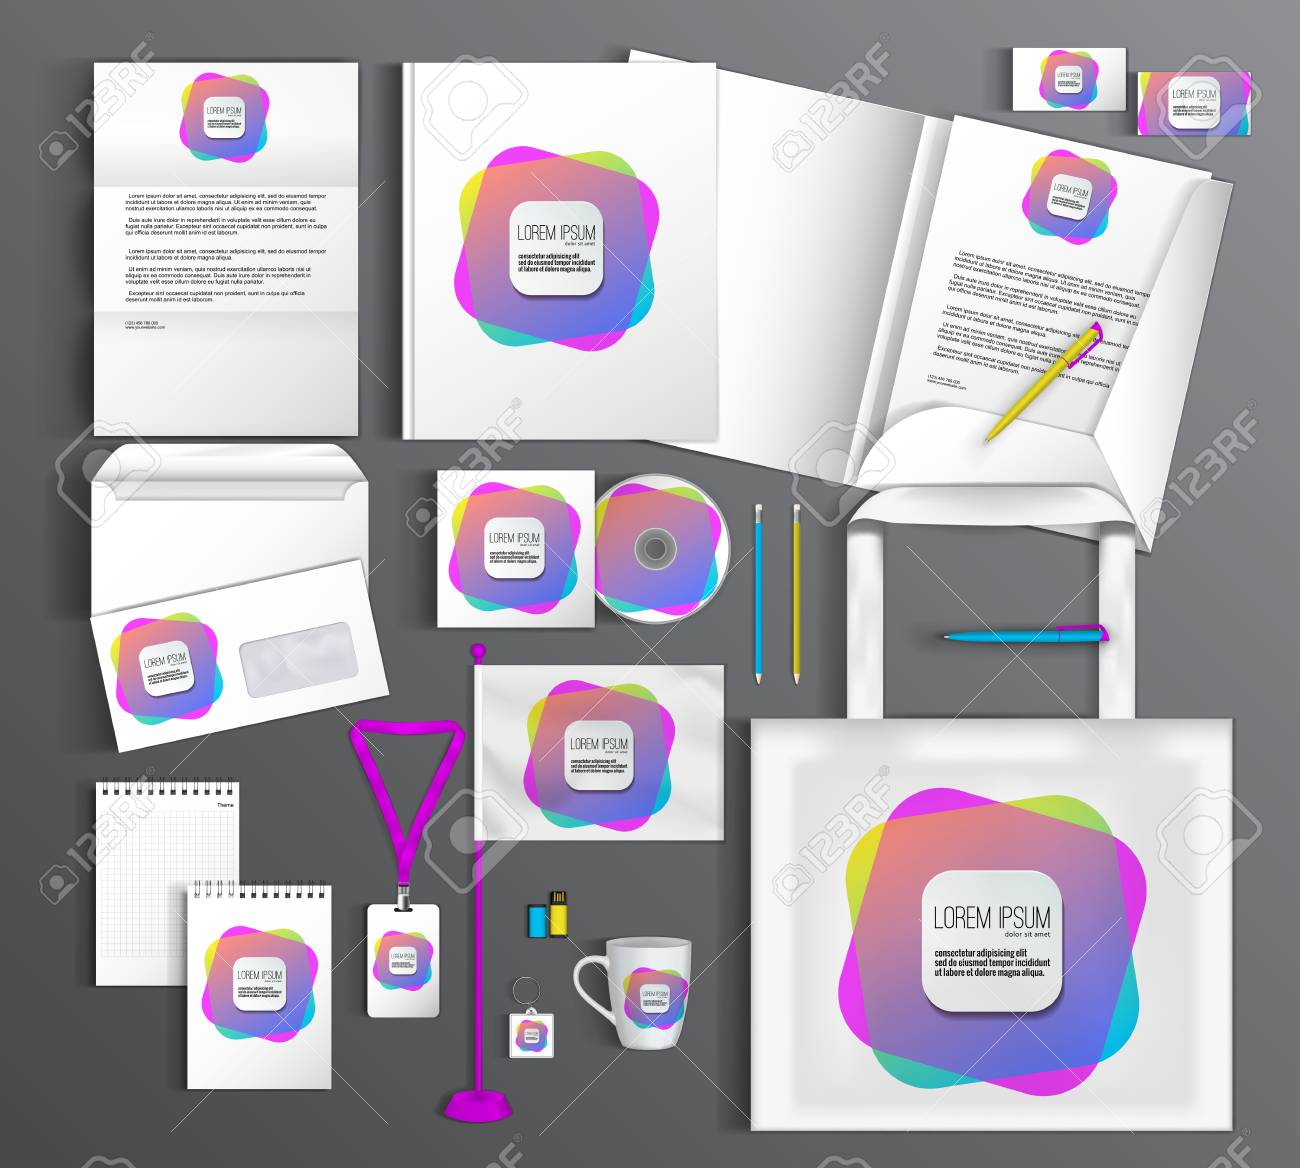 White Corporate Identity Template With Color Elements. Vector ...